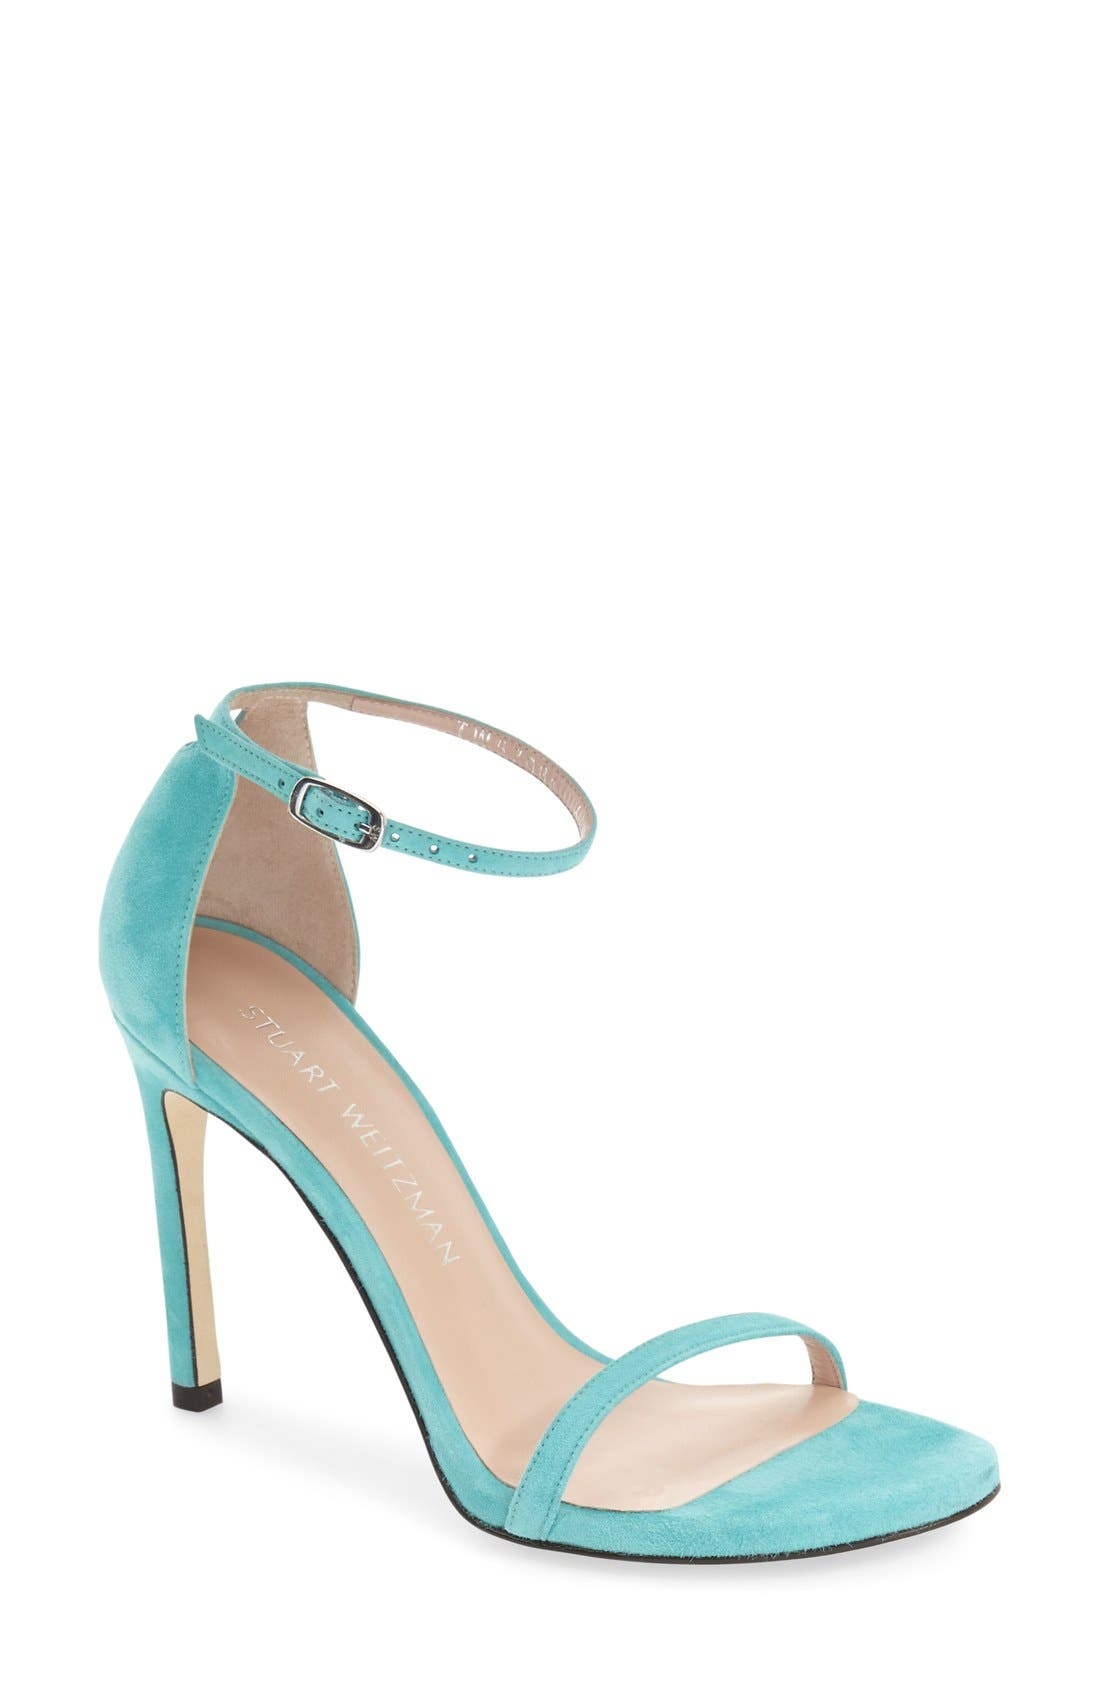 Nudistsong Ankle Strap Sandal,                             Main thumbnail 30, color,